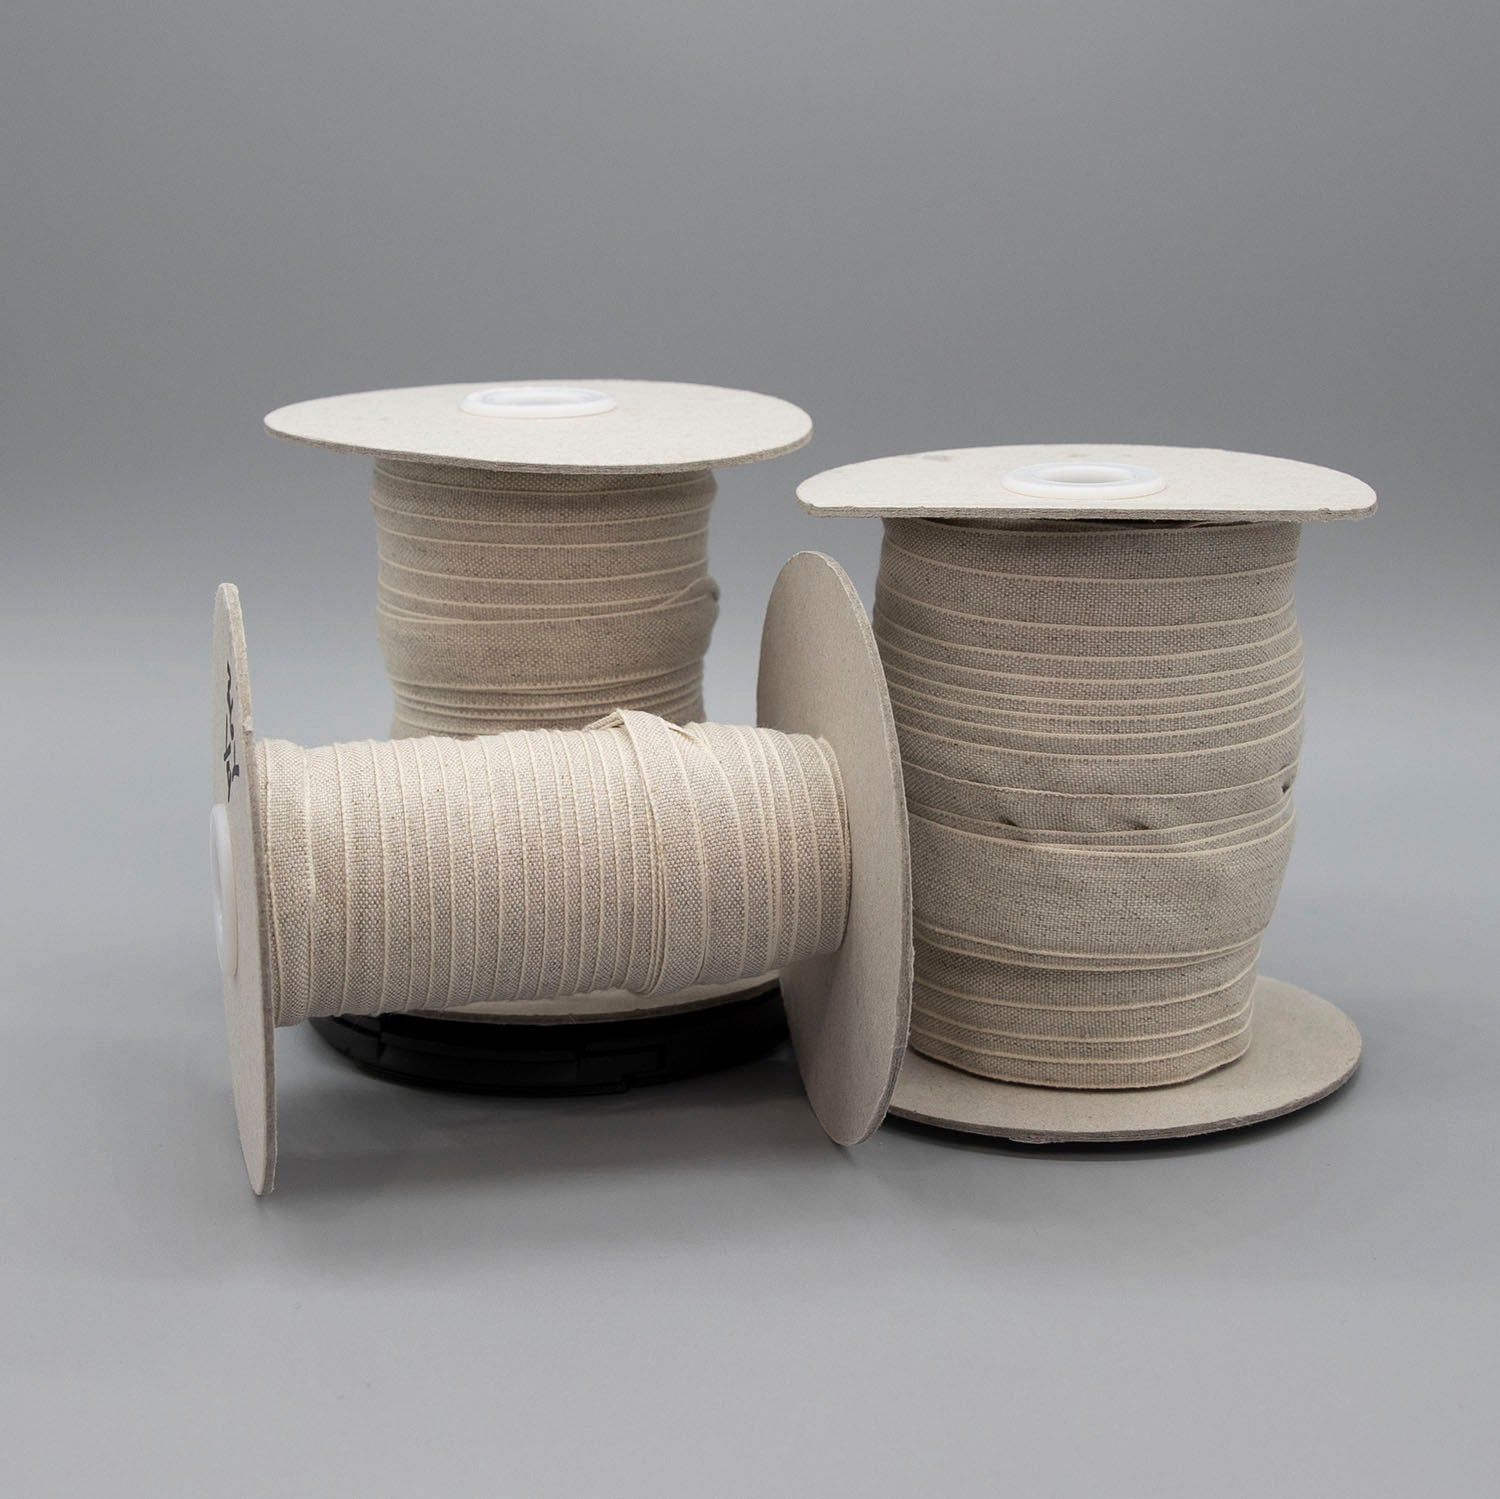 36 yd. roll Natural Dutch Linen Tape - SAVE 10% - $32.40 - $61.56